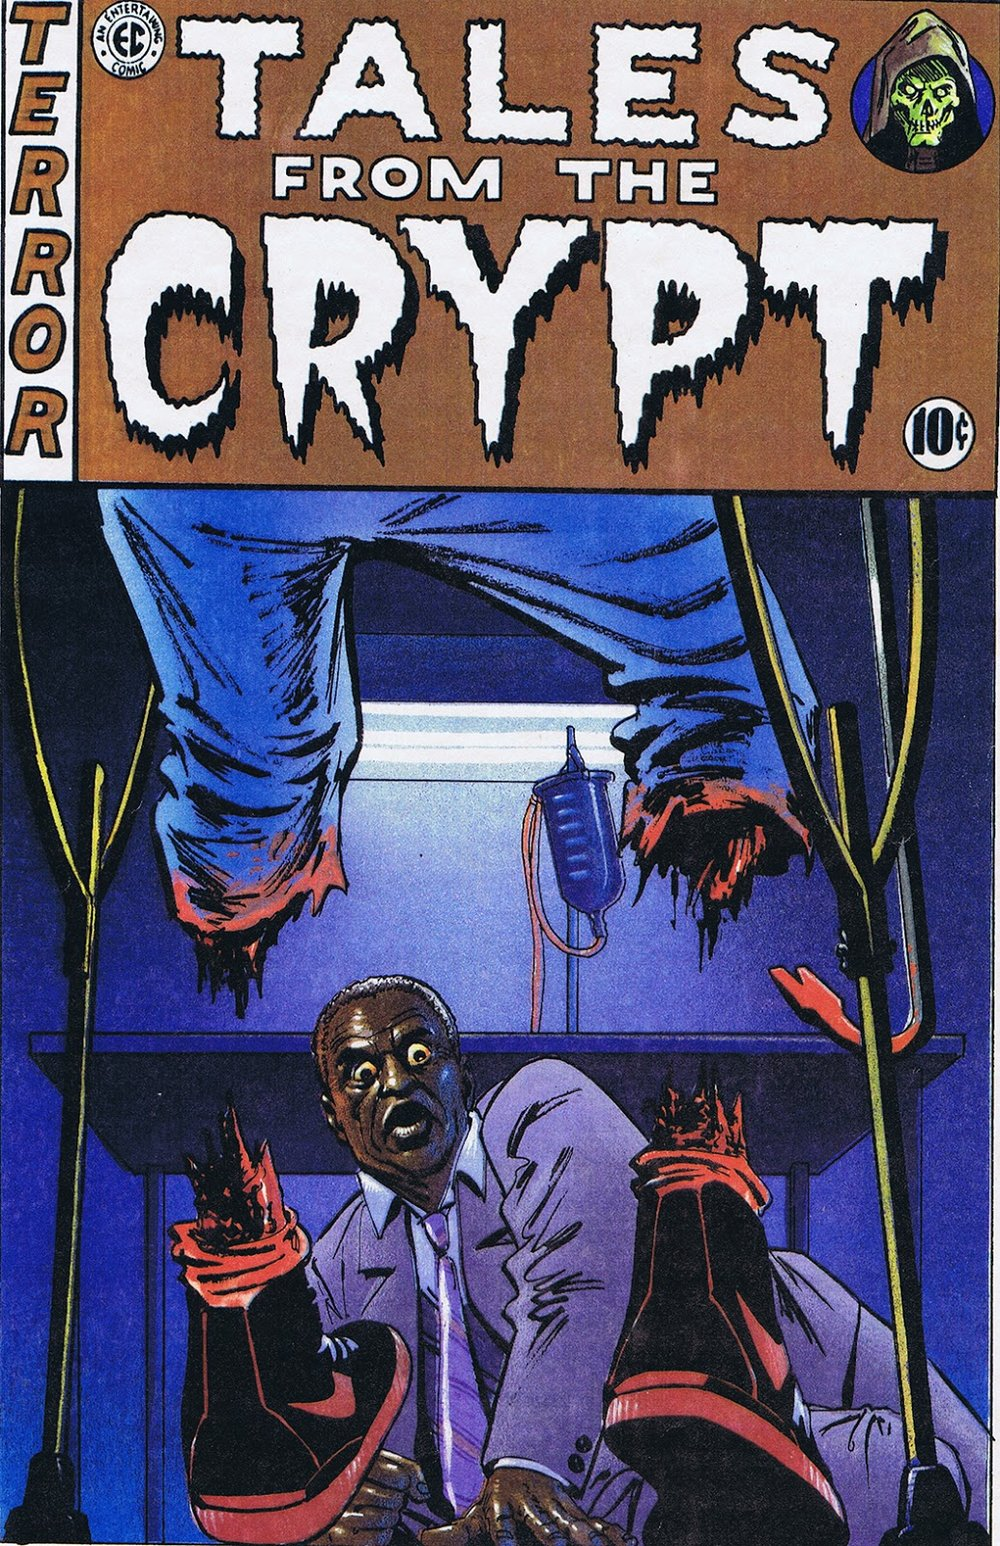 Fitting-Punishment-tales-from-the-crypt-40706424-1035-1600.jpg